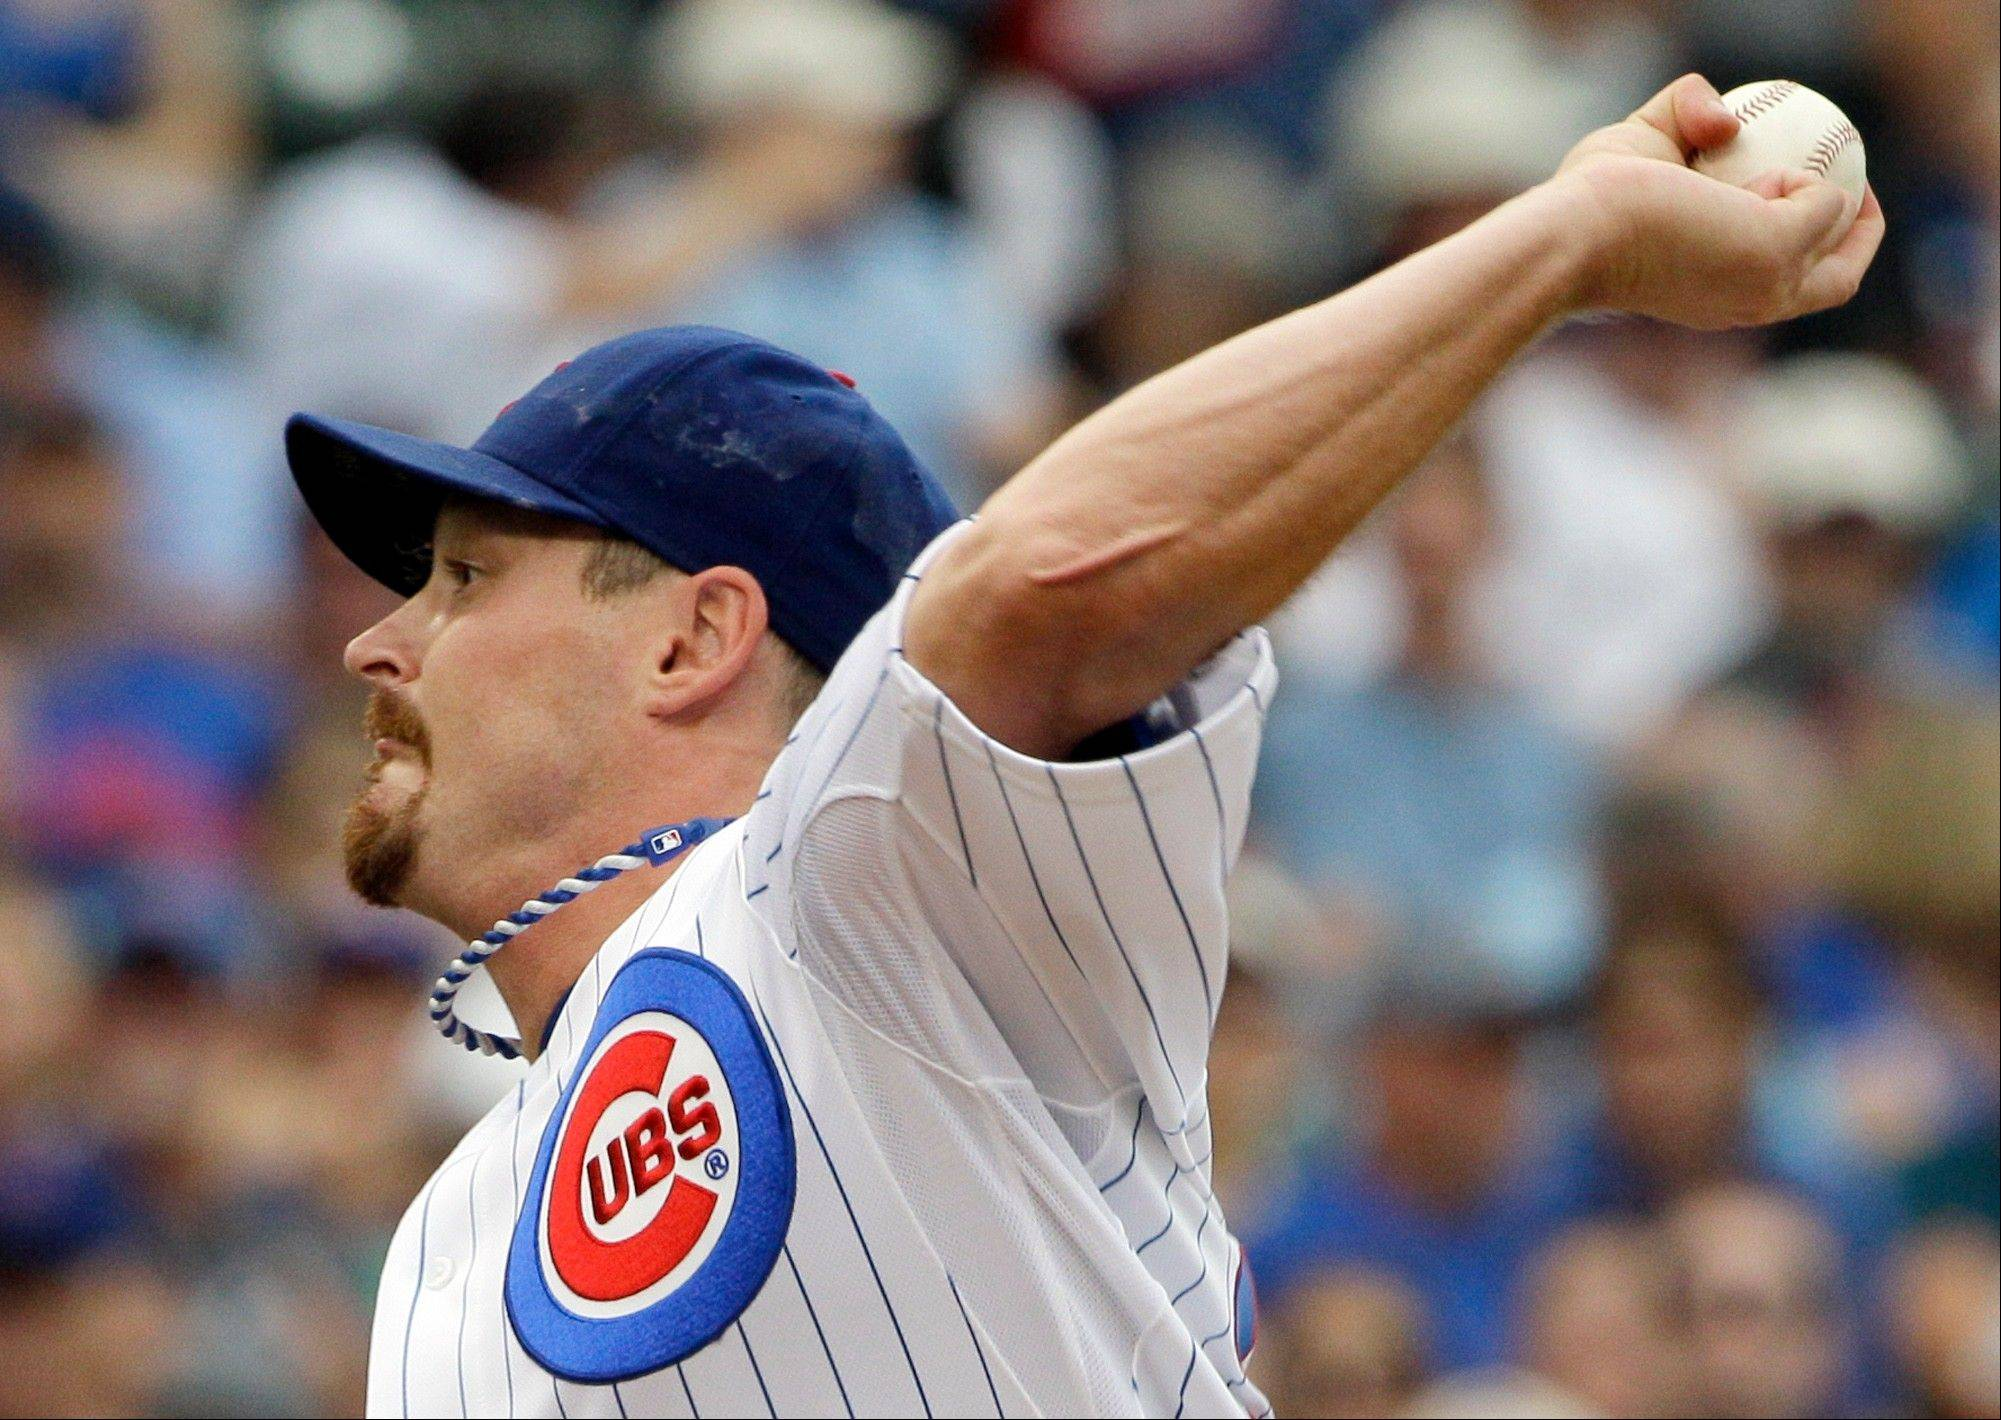 Cubs starter Travis Wood exited Sunday's game with the lead over the Giants, but he ended up with a no-decision.